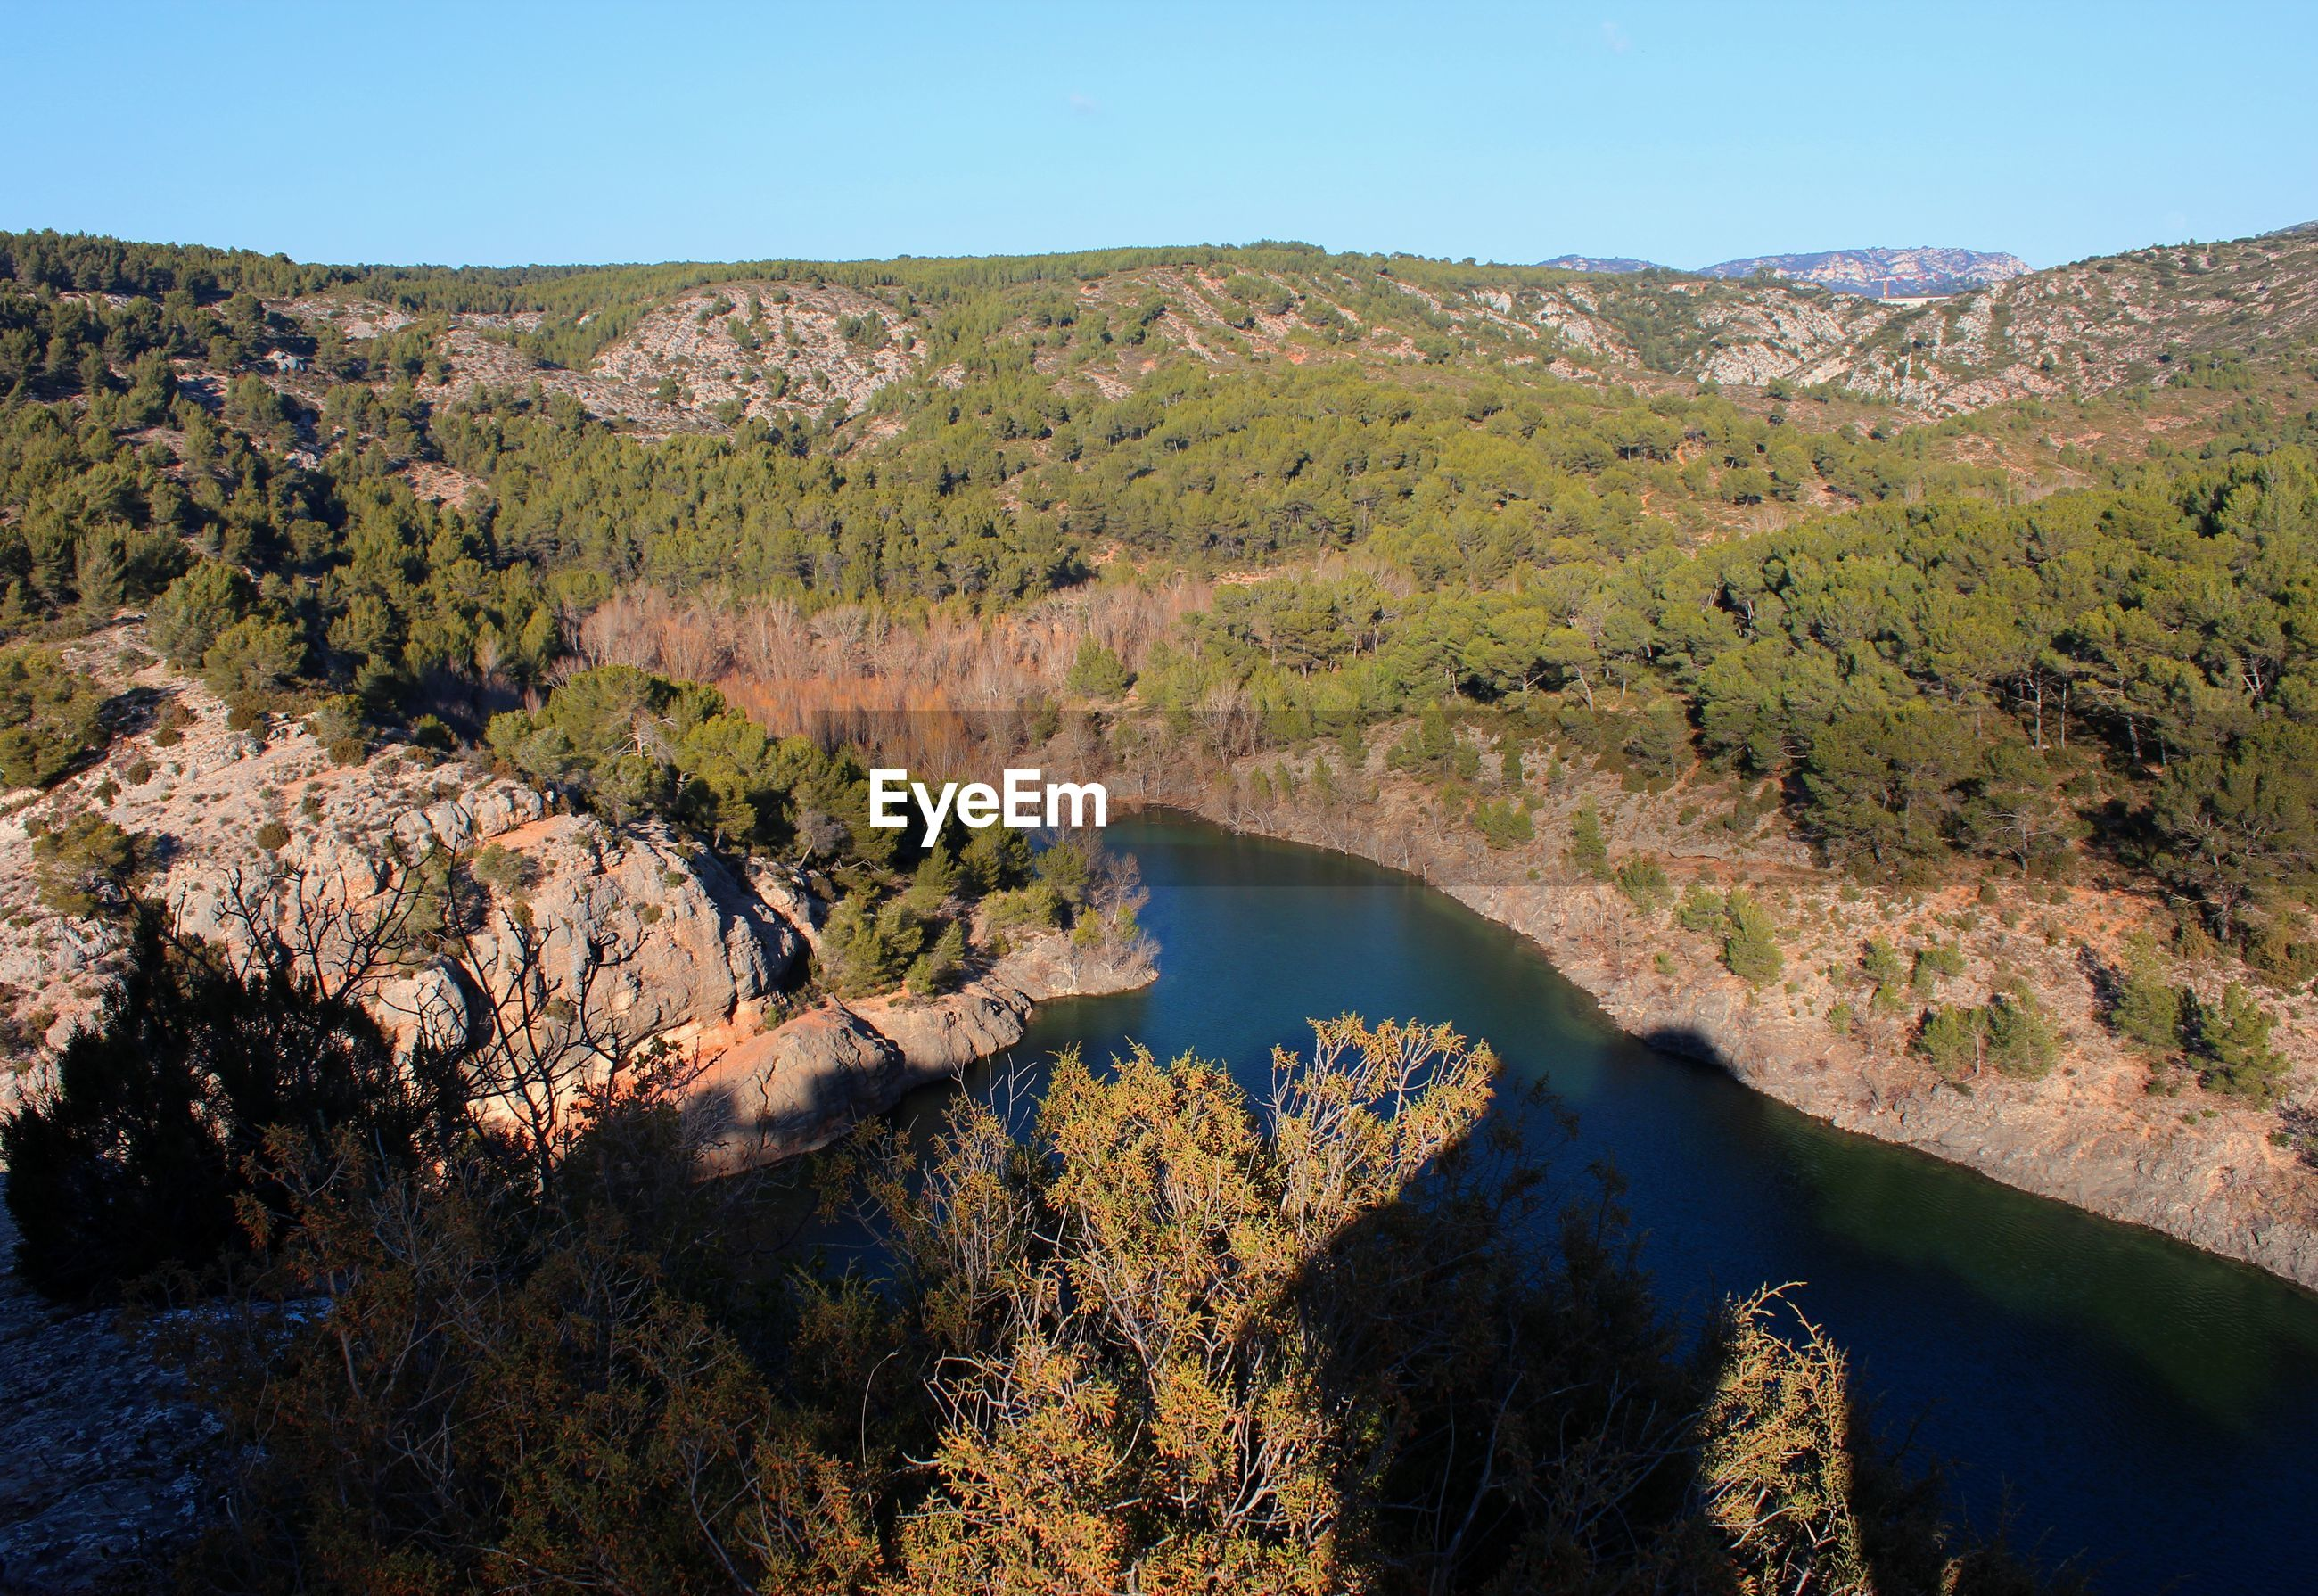 HIGH ANGLE VIEW OF RIVER AMIDST TREES AND MOUNTAINS AGAINST SKY